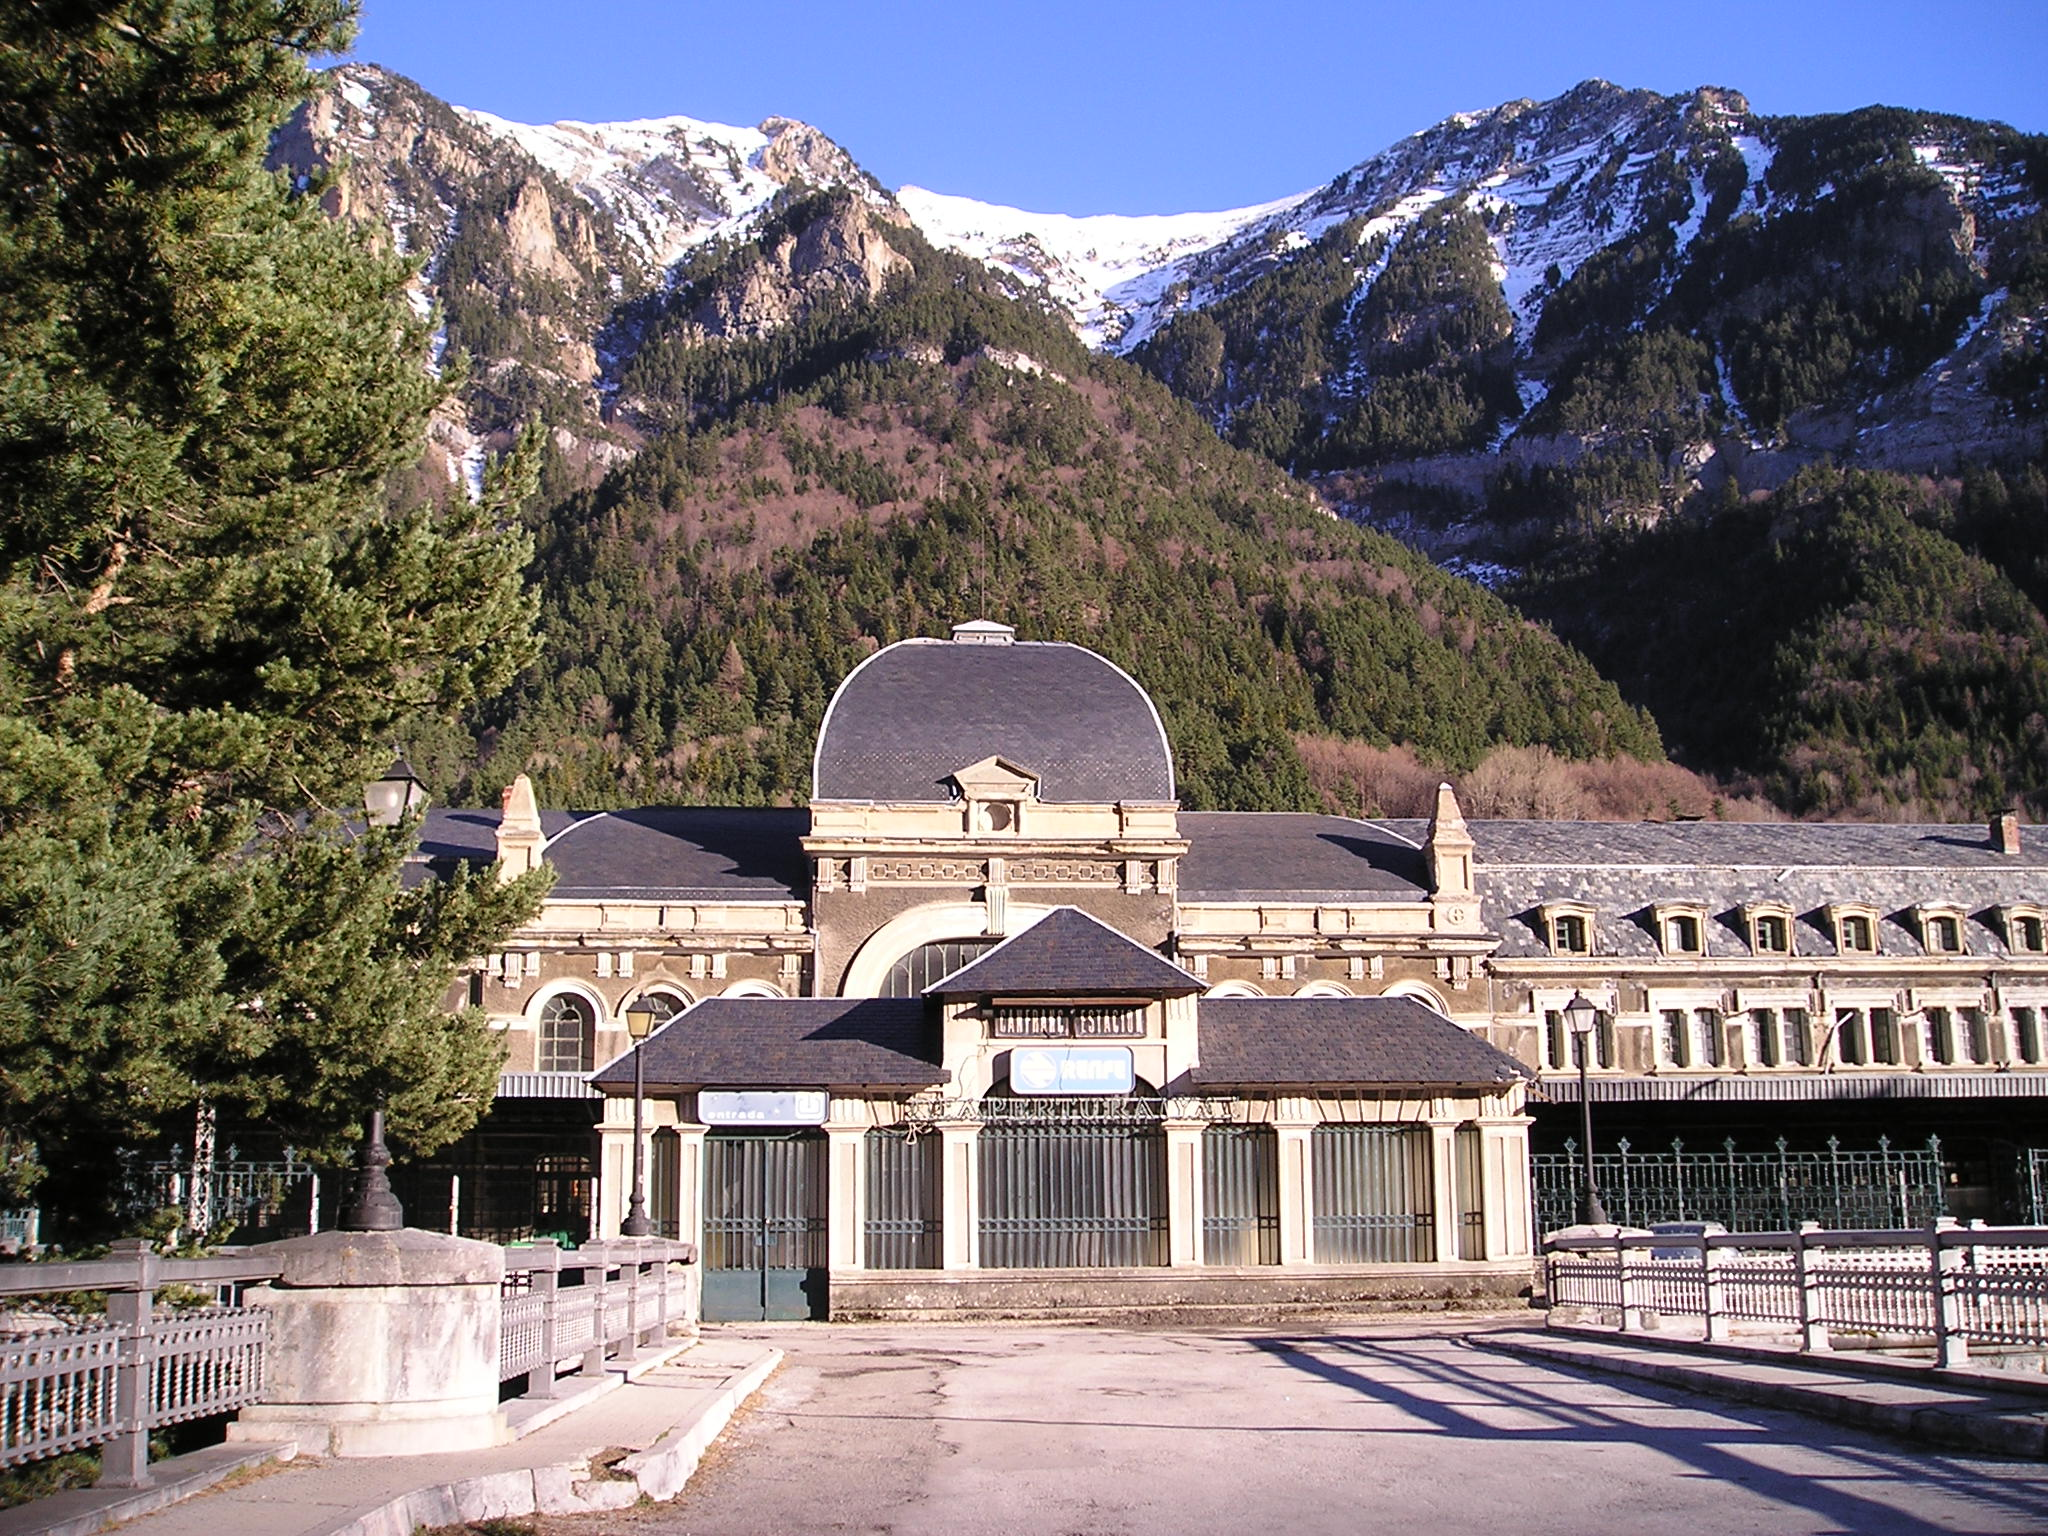 Renfe / ADIF: Canfranc